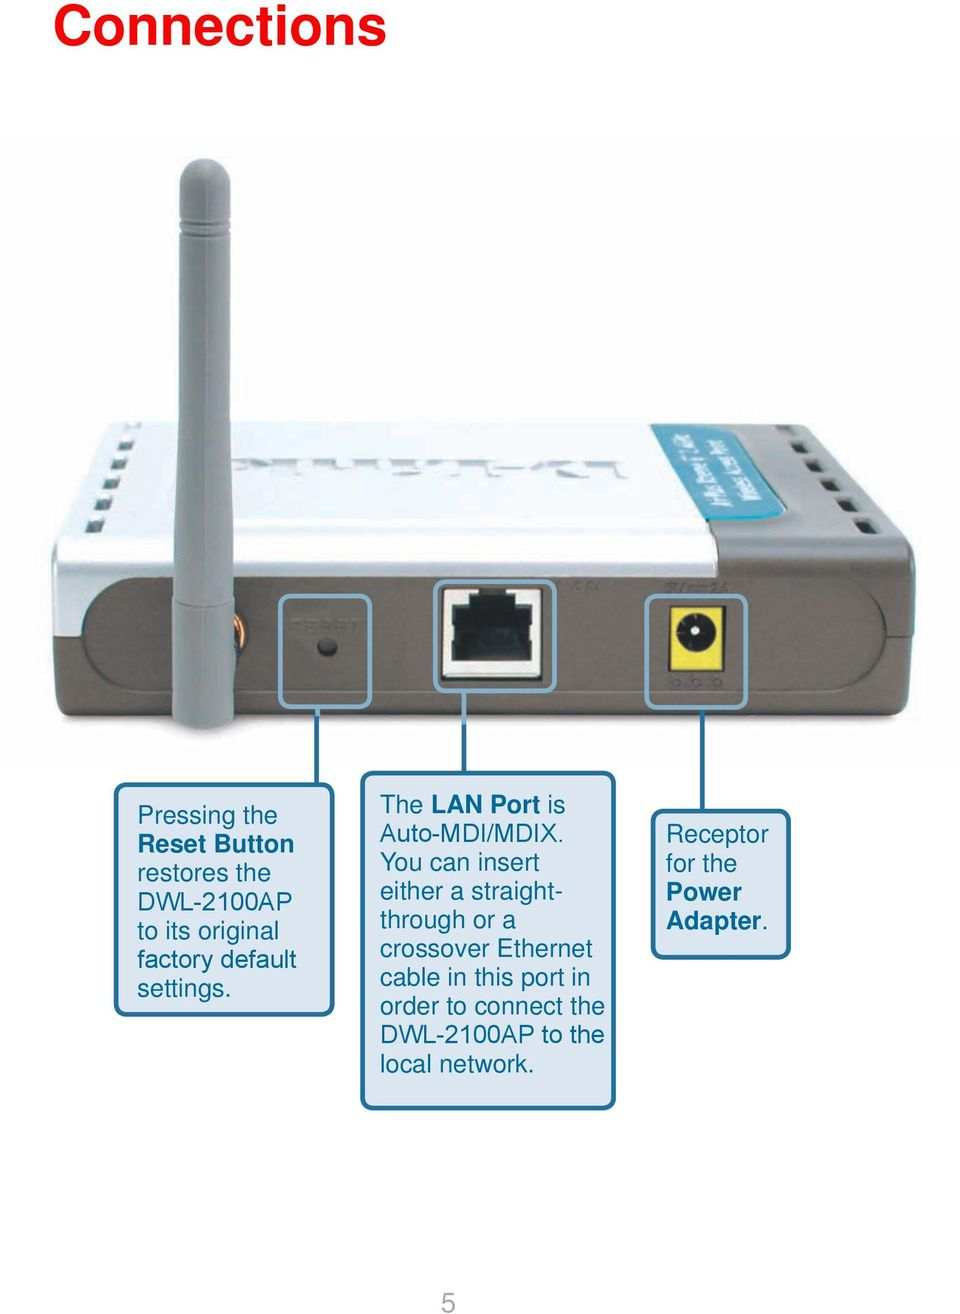 You can insert either a straightthrough or a crossover Ethernet cable in